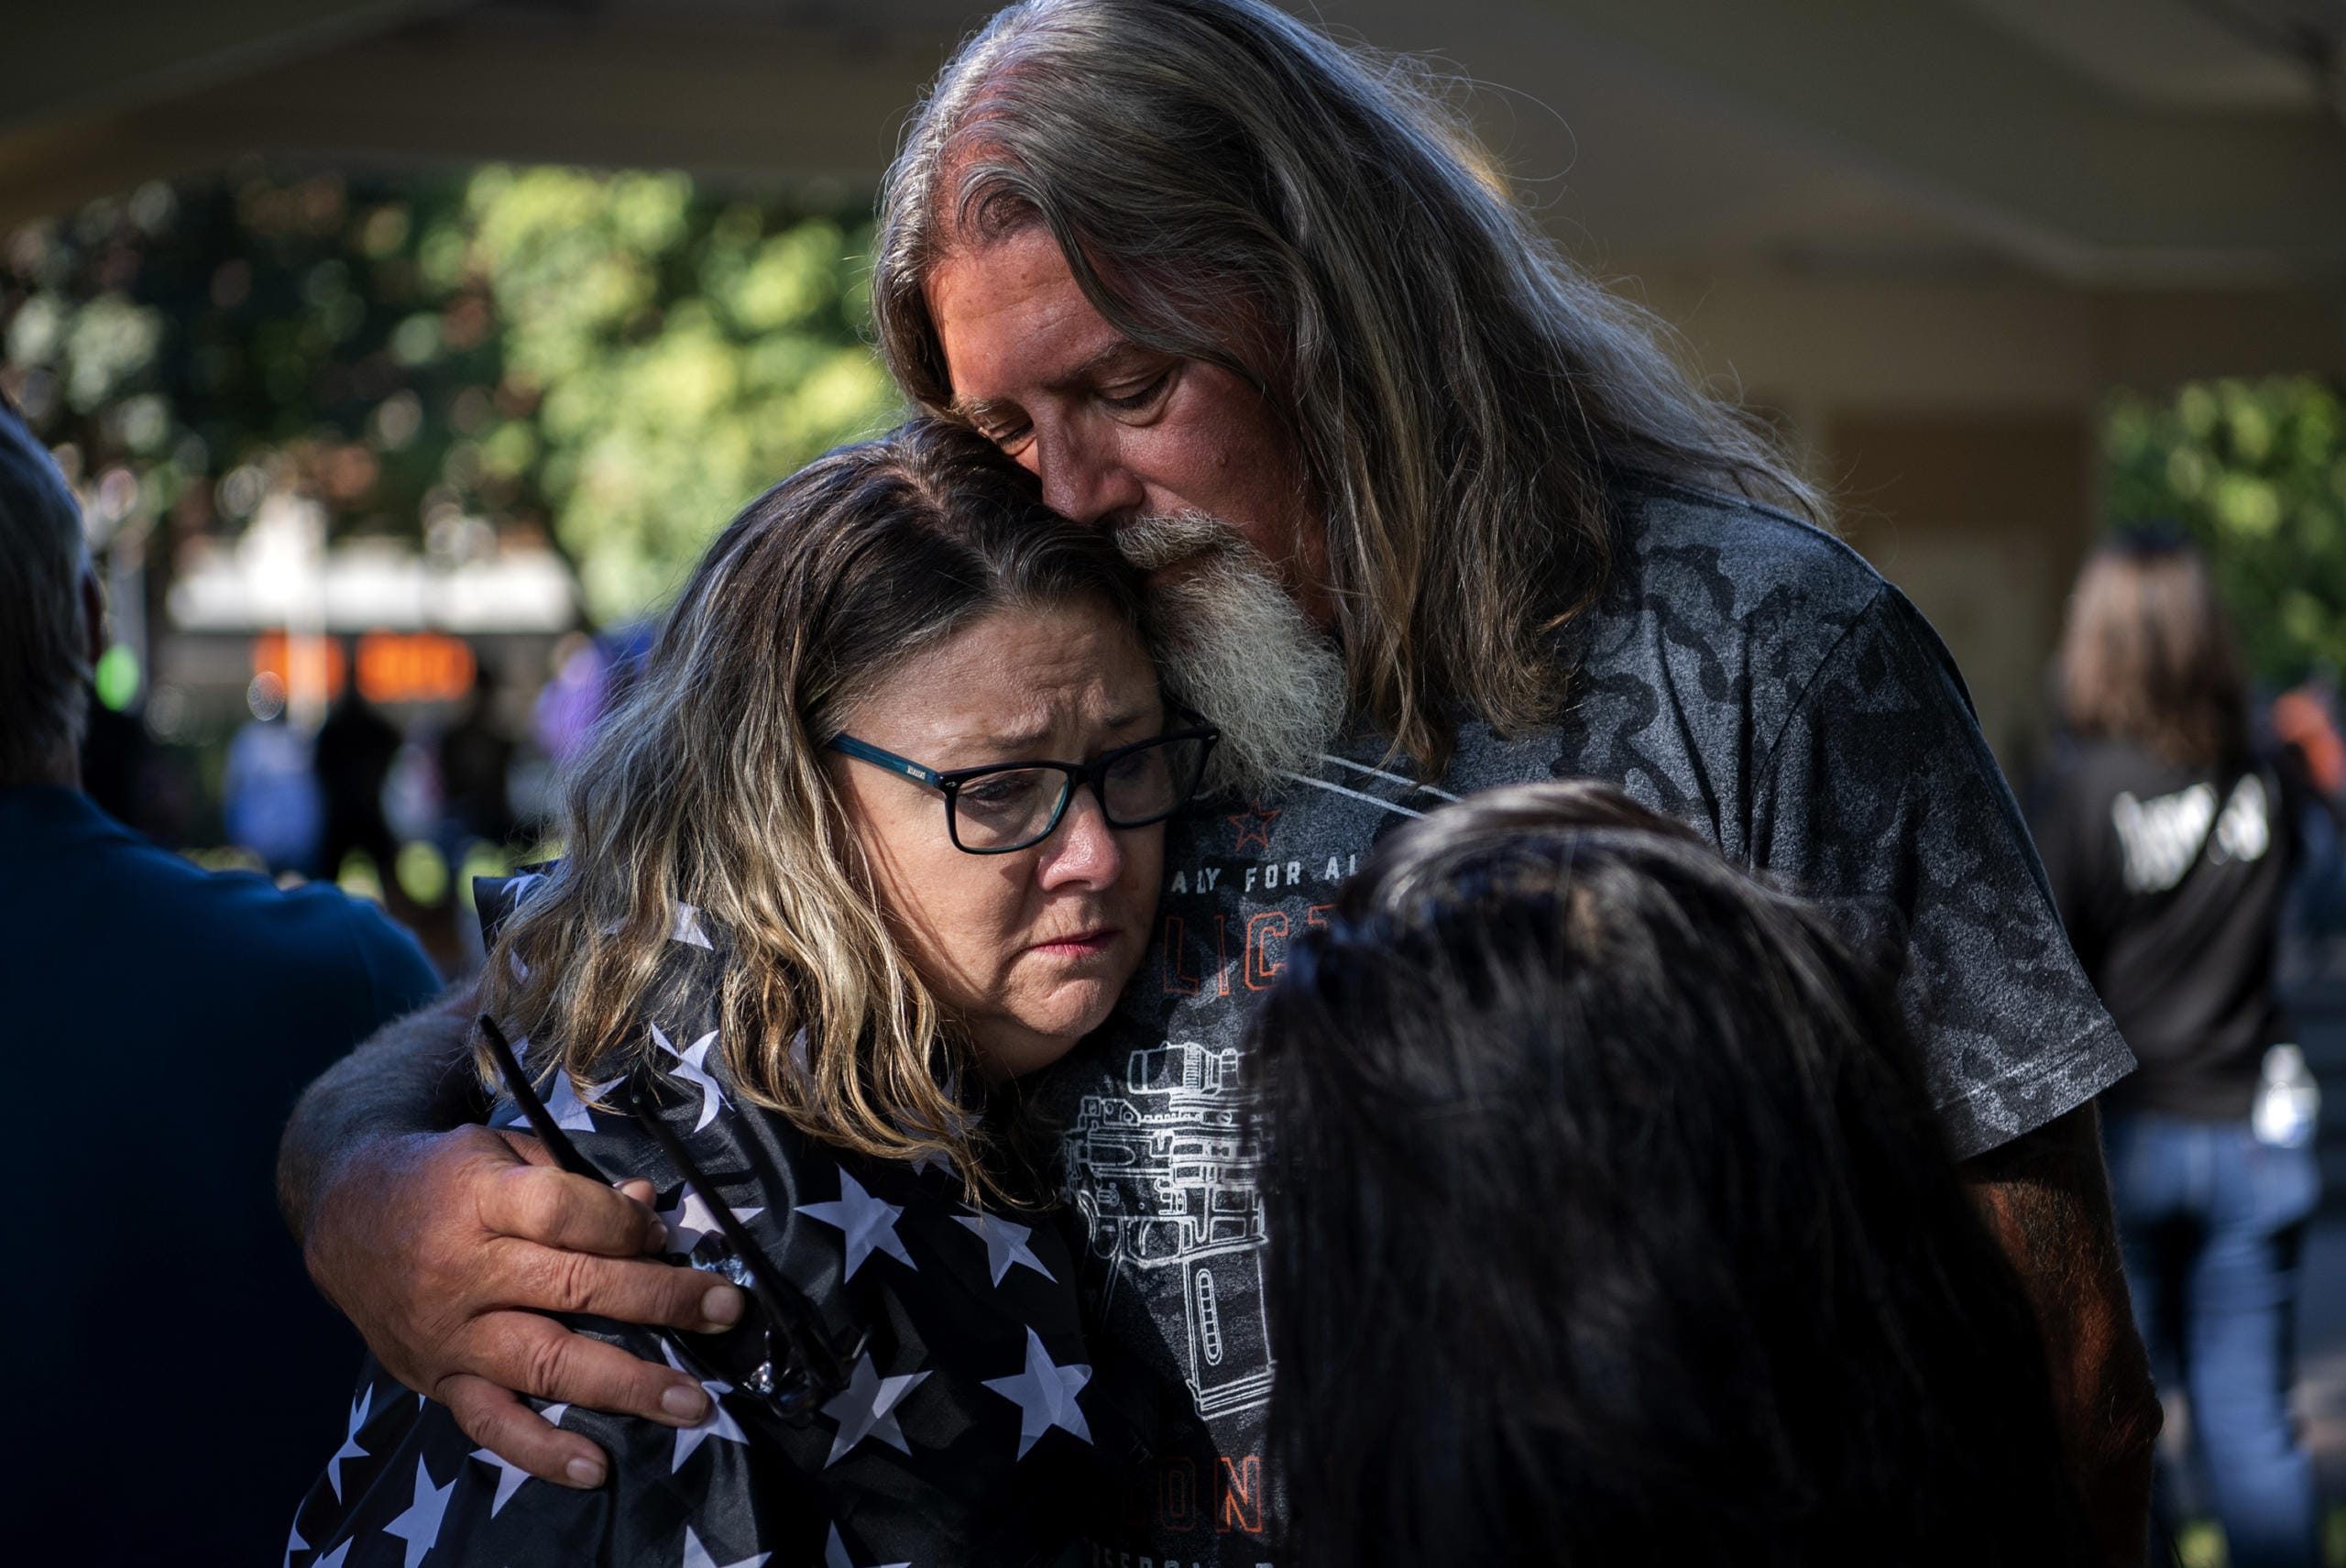 """LaDon Deatherage of Vancouver embraces David Machado after the memorial to remember Aaron """"Jay"""" Danielson who was fatally shot after a pro-Trump rally in Portland last month, at Esther Short Park in Vancouver on September 5, 2020. Deatherage and Machado were both friends with Jay and fellow Patriot Prayer members. """"My heart is heavy,"""" said Detherage. """"These people are called white supremacists and racists, and they are falsely labeled."""" (Alisha Jucevic/The Columbian)"""